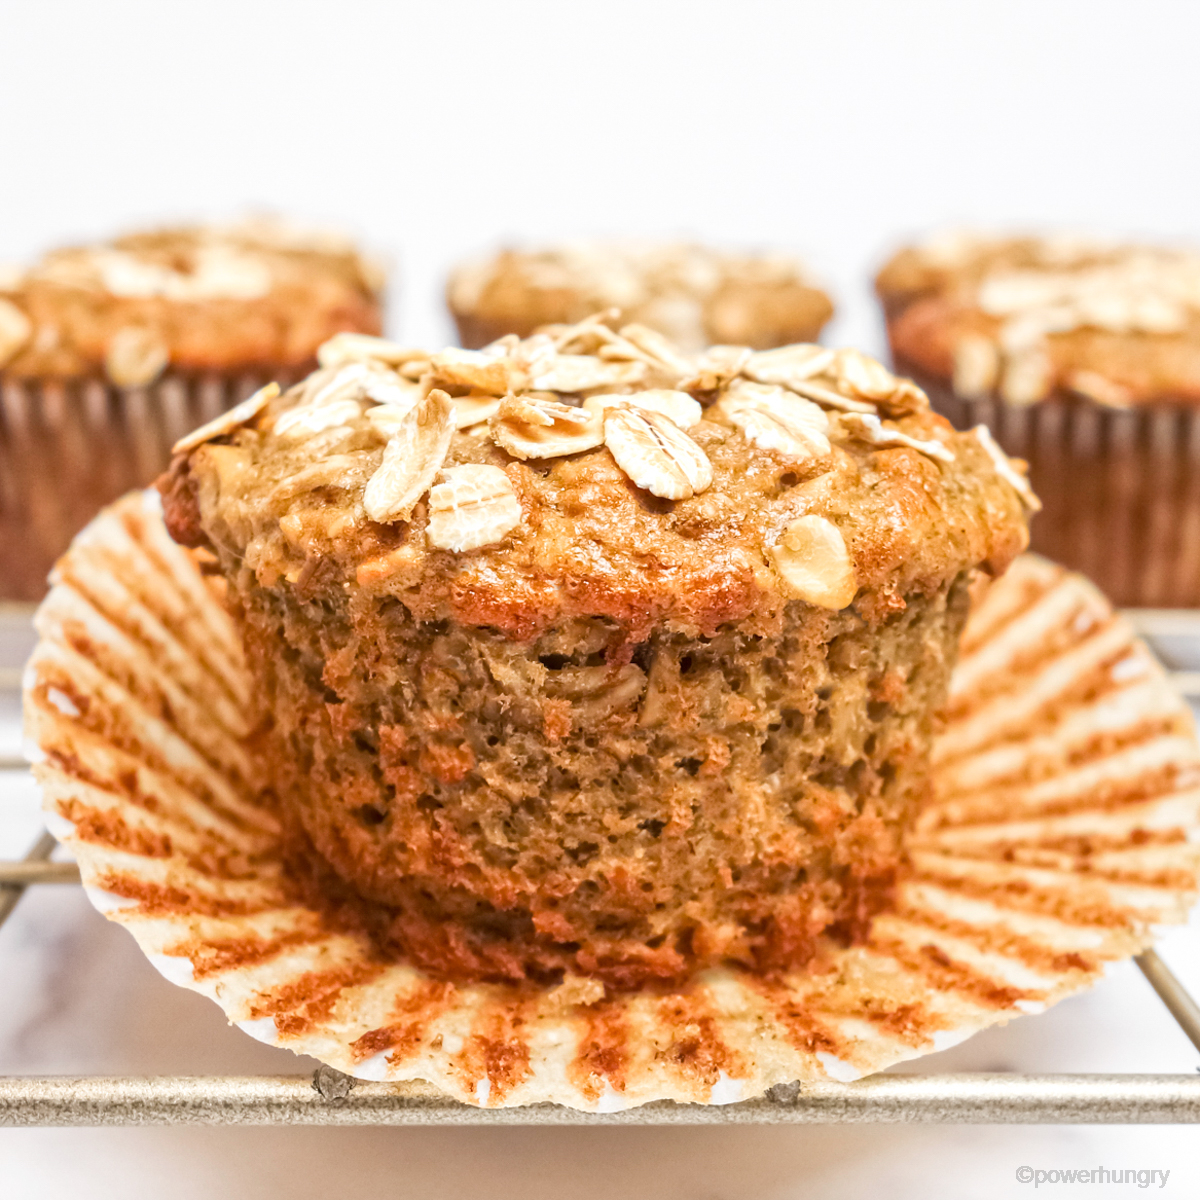 banana oat muffin with the paper removed part way